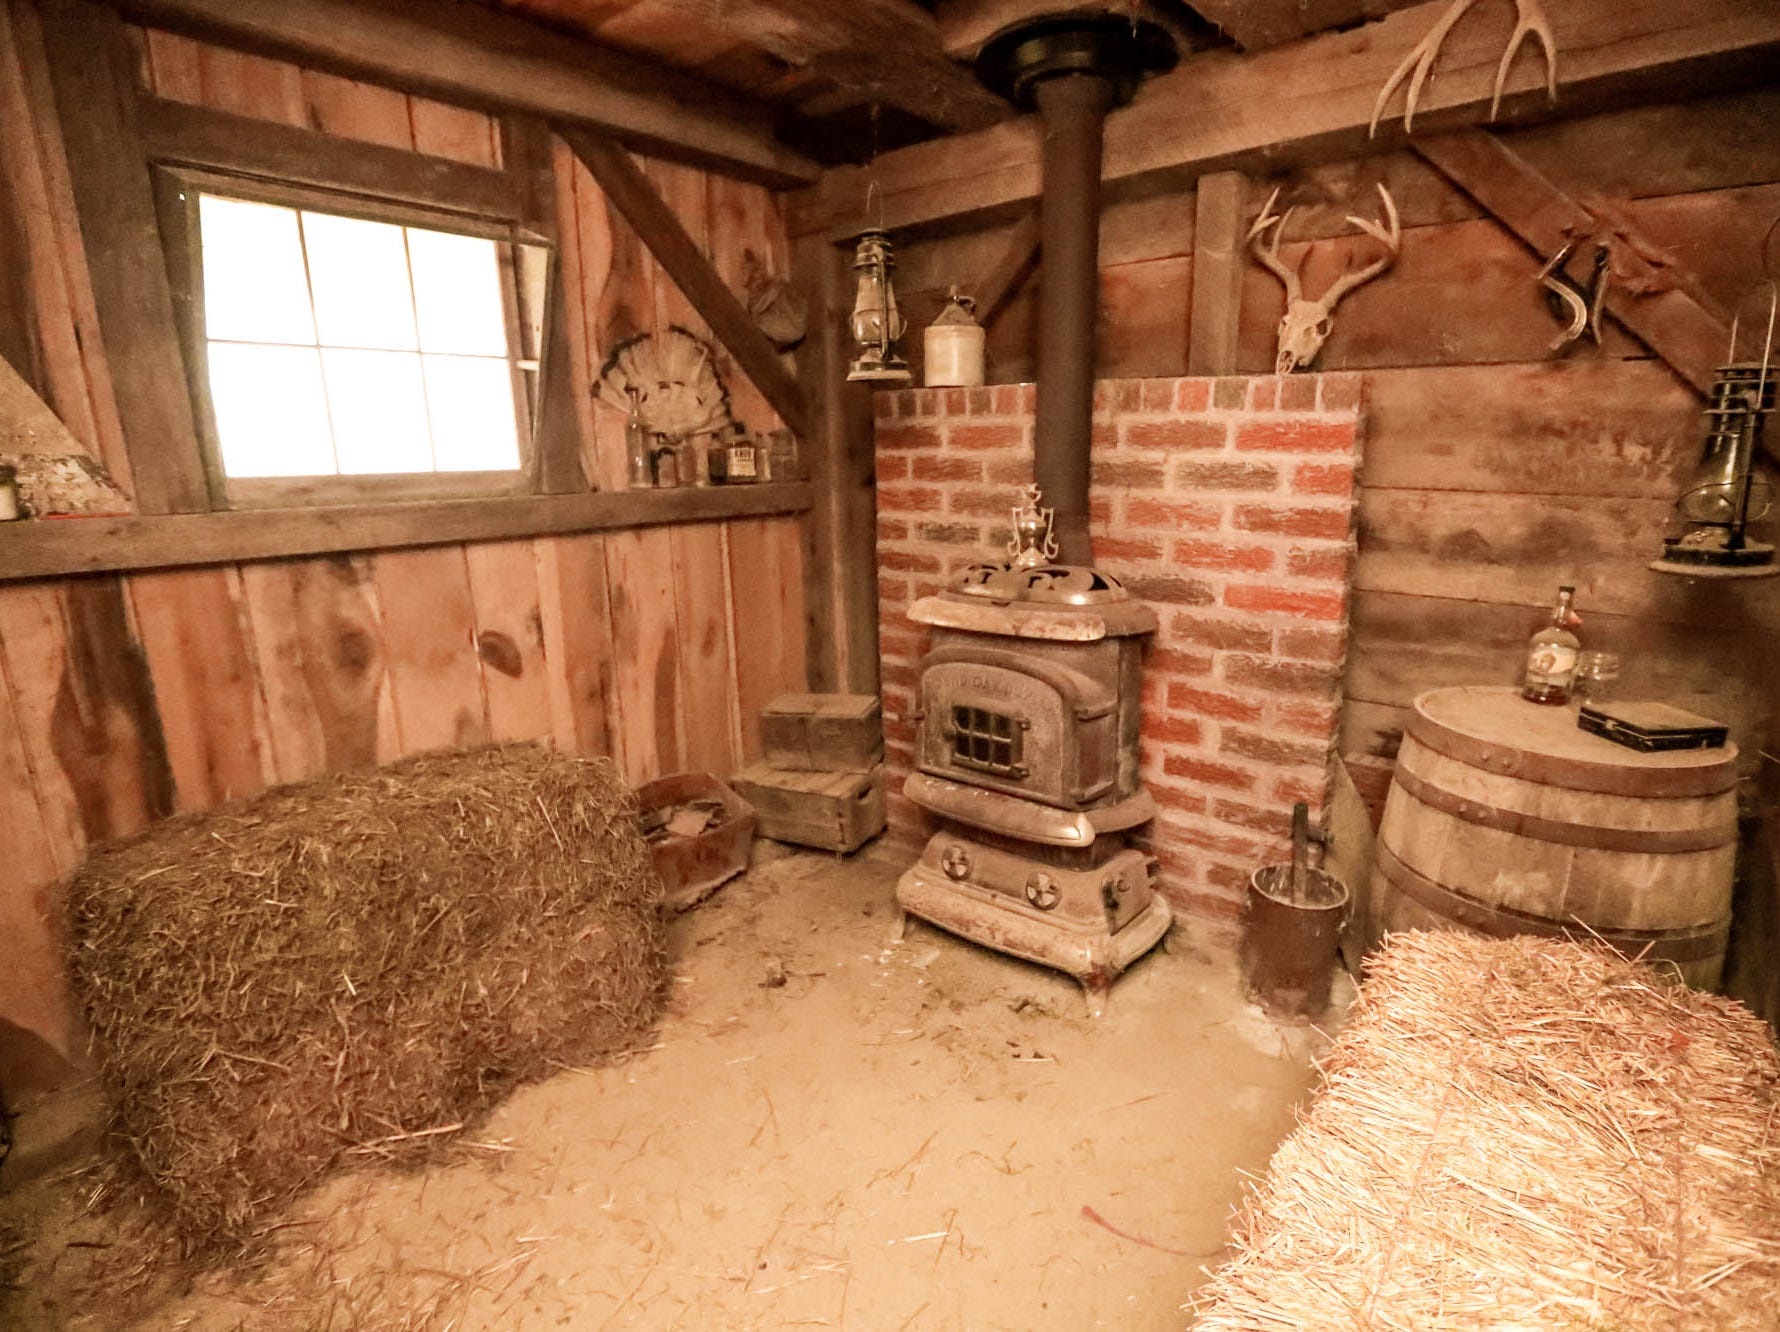 A man cave with a vintage stove is located inside a one-hundred-year-old barn moved from northern Indiana, which sits behind a traditional style $2m home up for sale in Bargersville Ind. on Wednesday, Jan. 9, 2019. The house and barn sit on 8.1 acres.